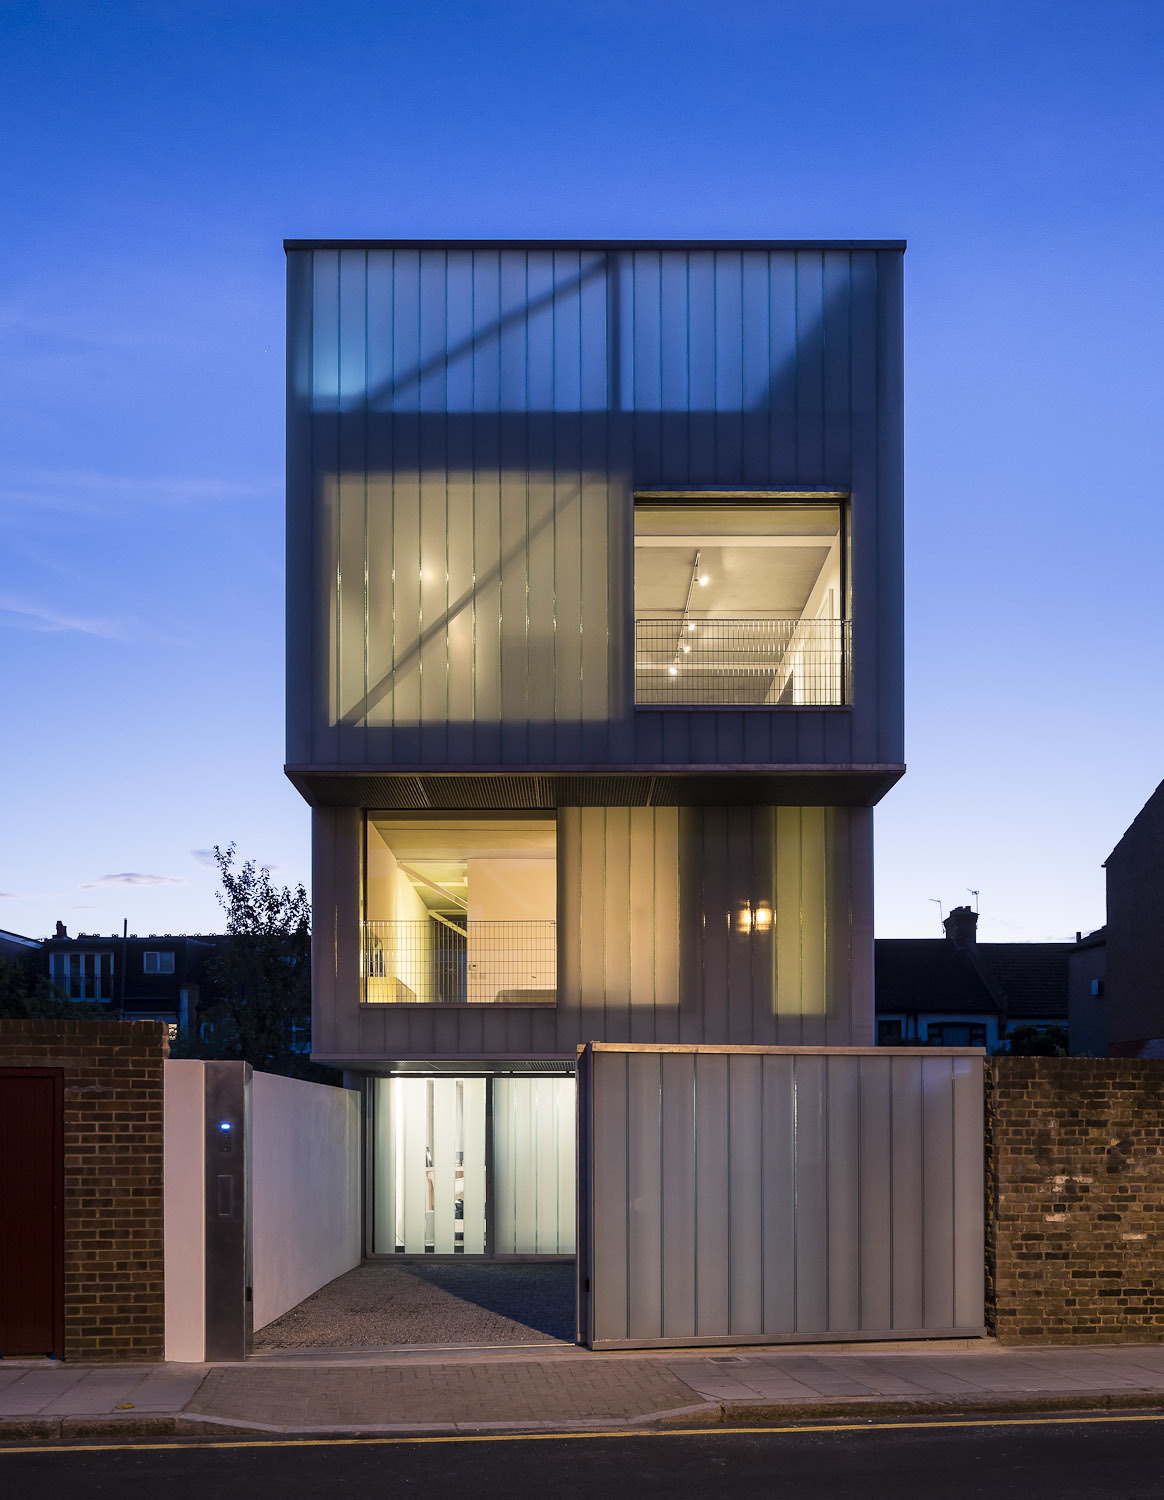 Slip house carl turner architects archinect for Modern architecture house london